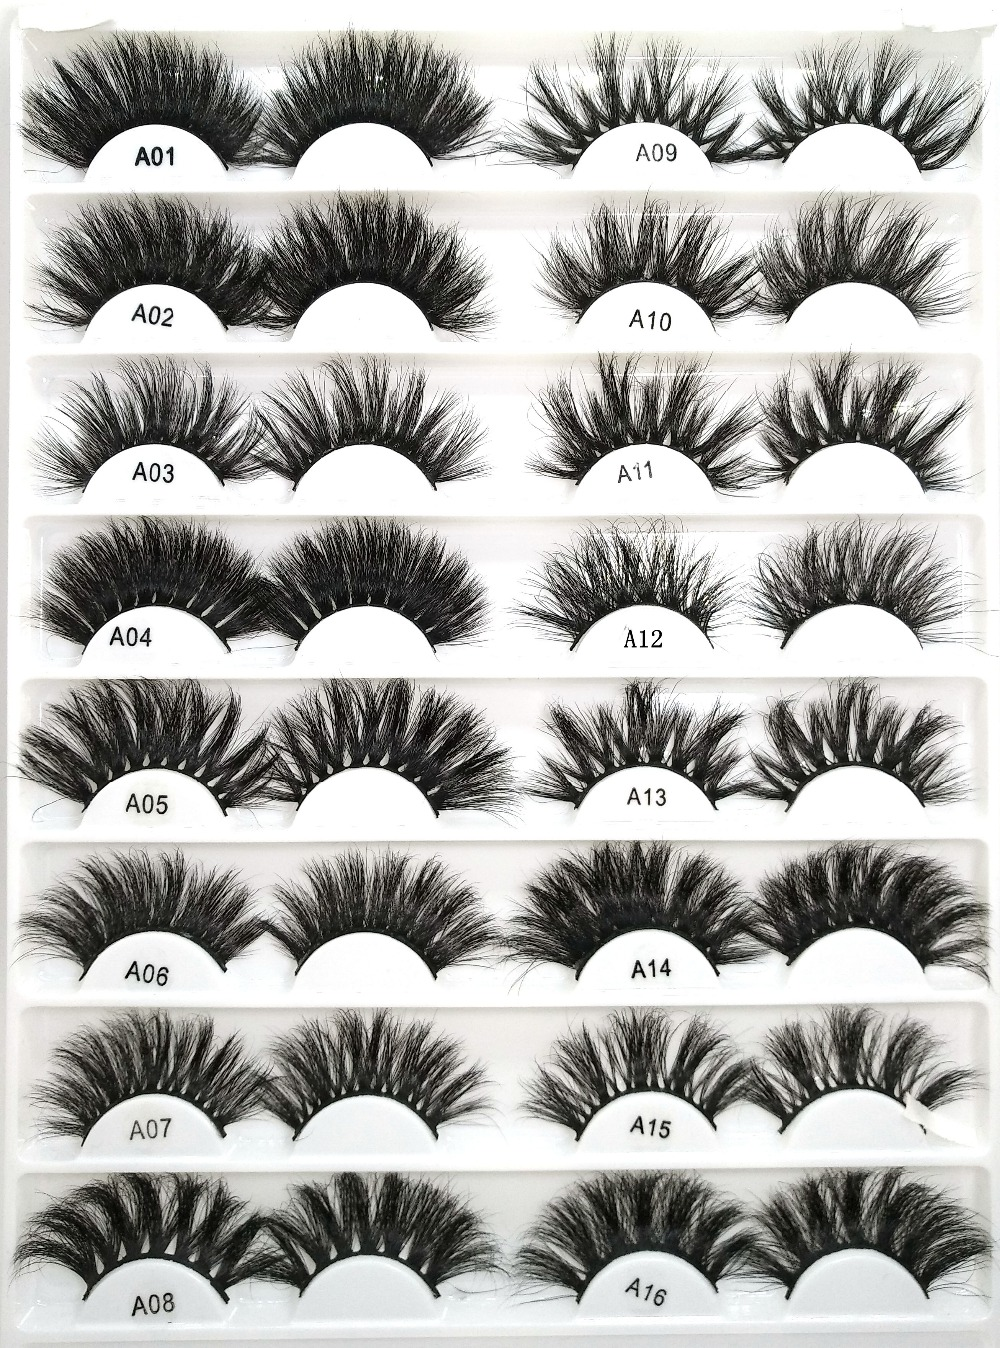 2019 NEW 100 Mink Lashes Eyelashes Length 25mm Criss Cross Strands High Volume Mink Lashes Soft